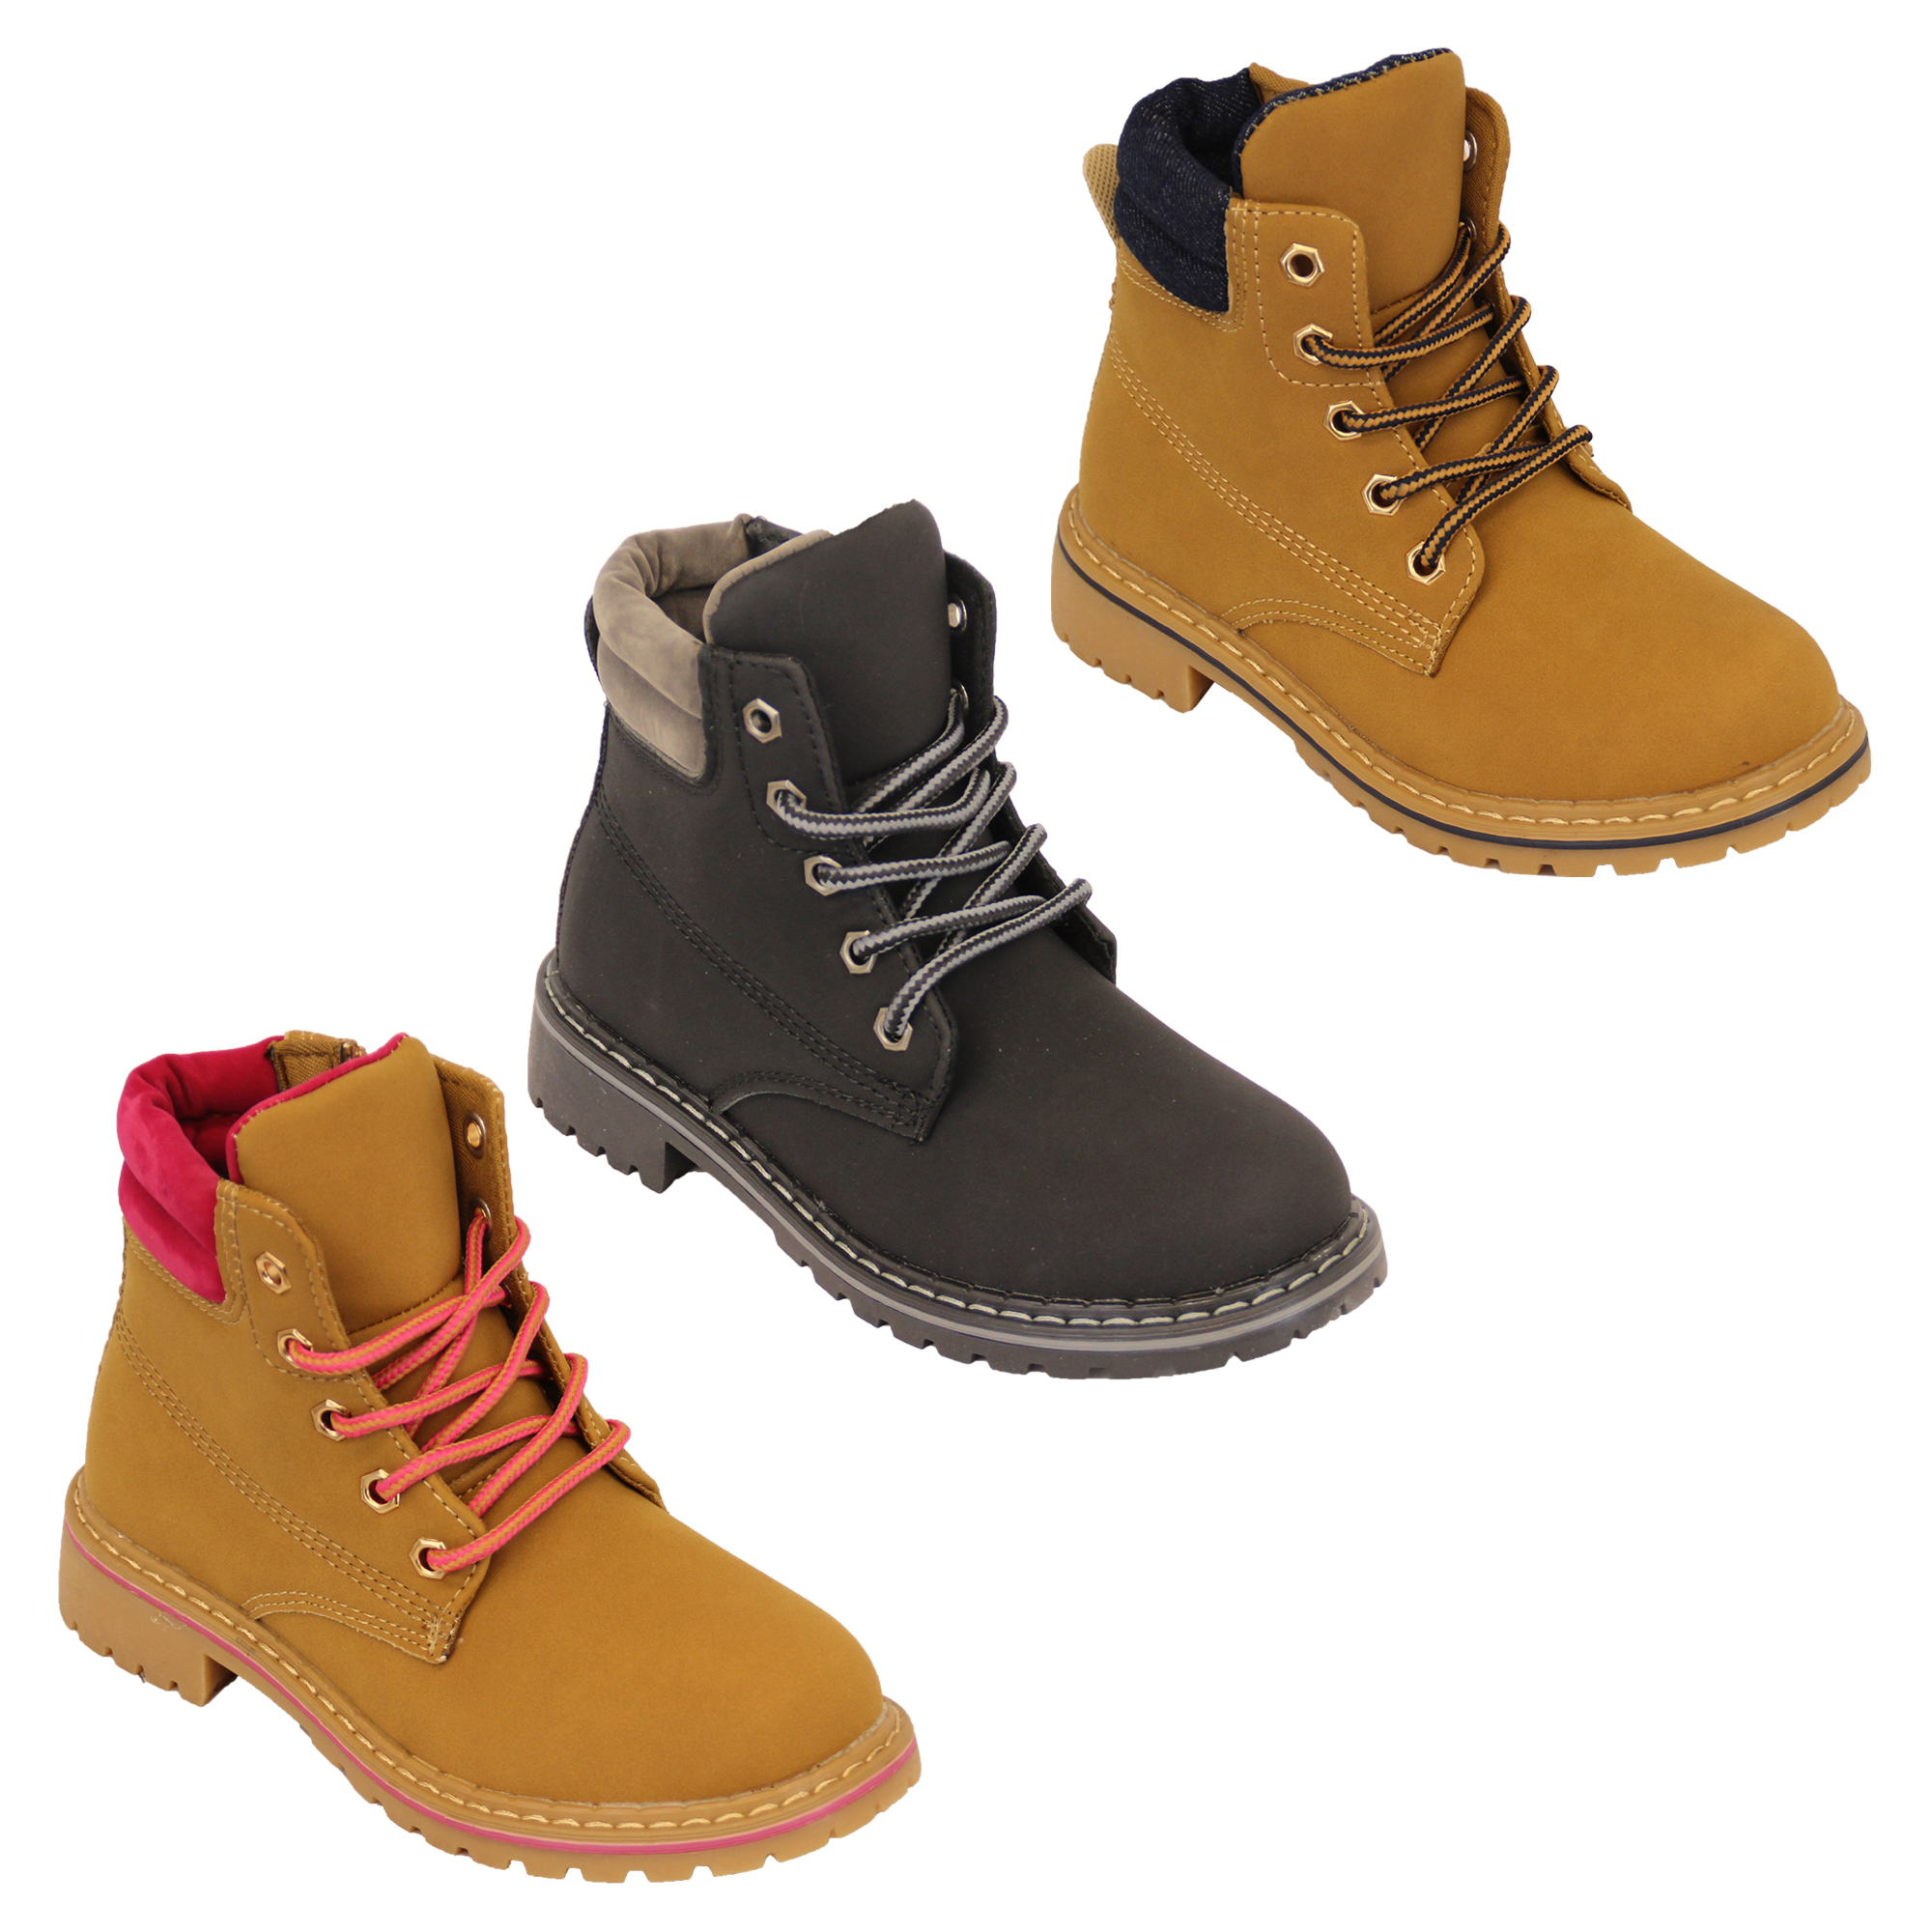 These boots are made for walking – and playing, hiking, and just looking downright adorable. Discover the latest kids' boots for boys and girls from top boot brands, including Columbia, Itasca Sonoma, Makalu, and Bearpaw, at Shoe Carnival.